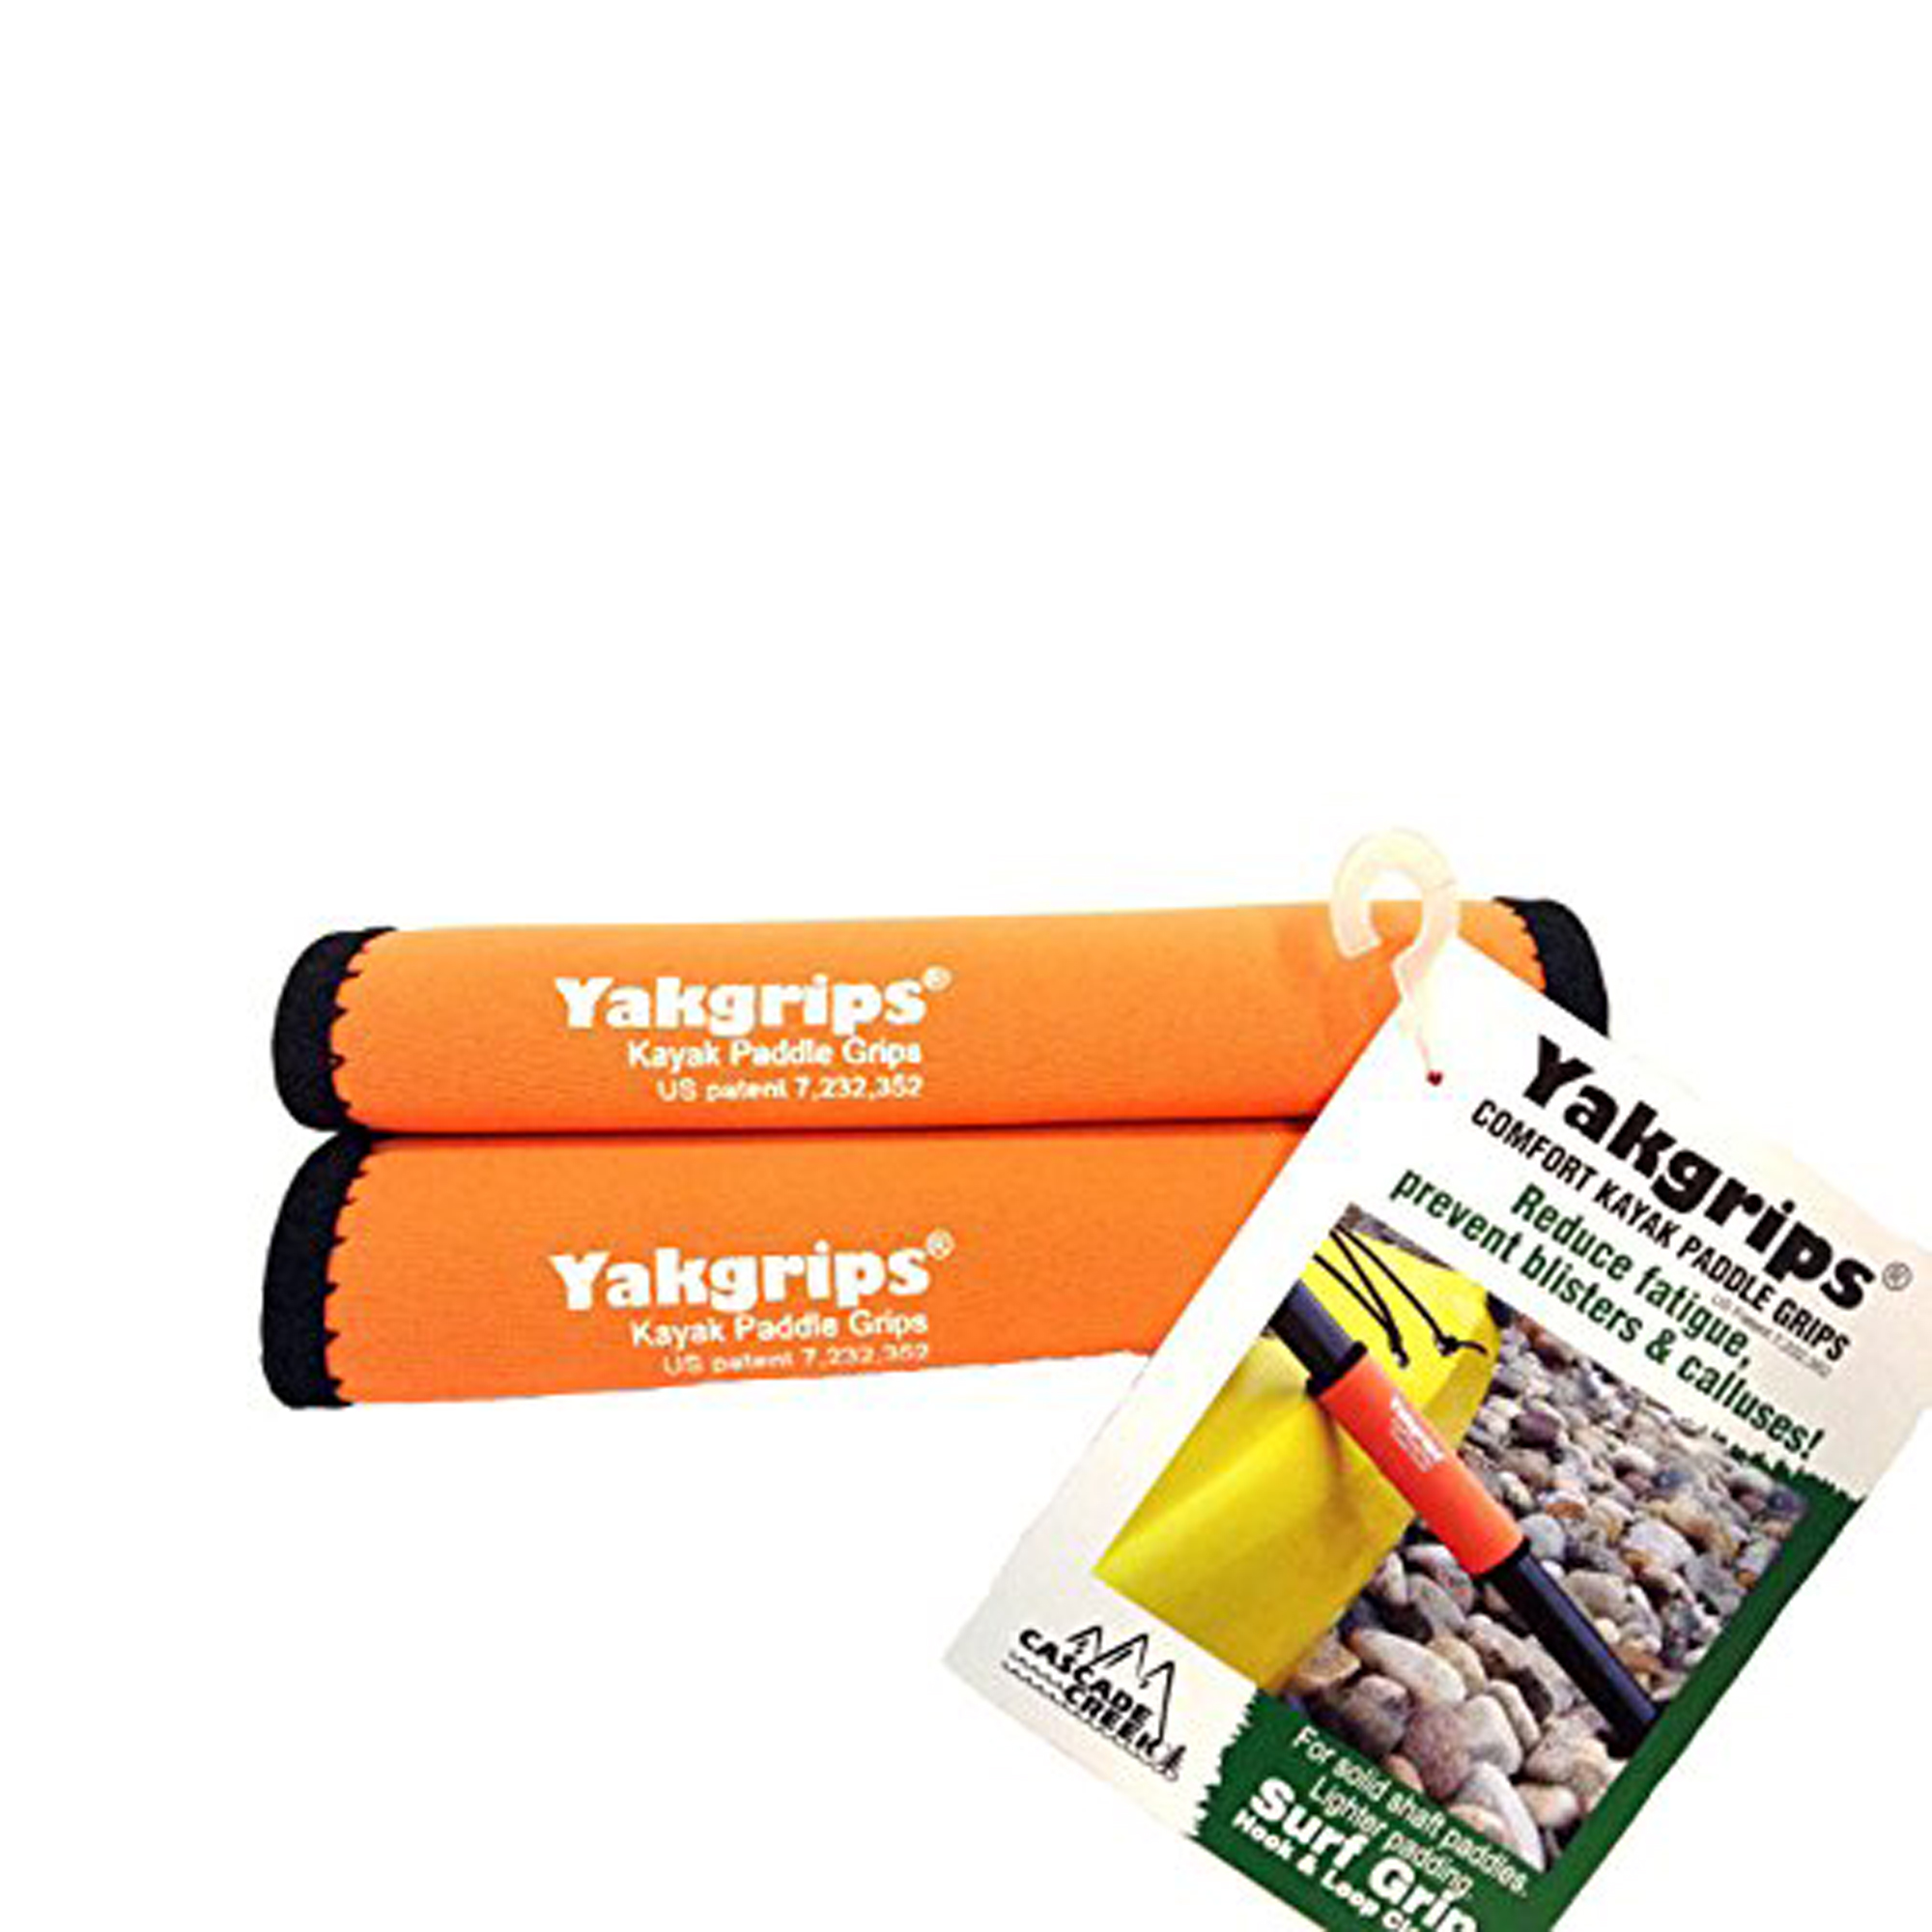 Yakgrips® Comfort Neoprene Kayak Paddle Grips Orange